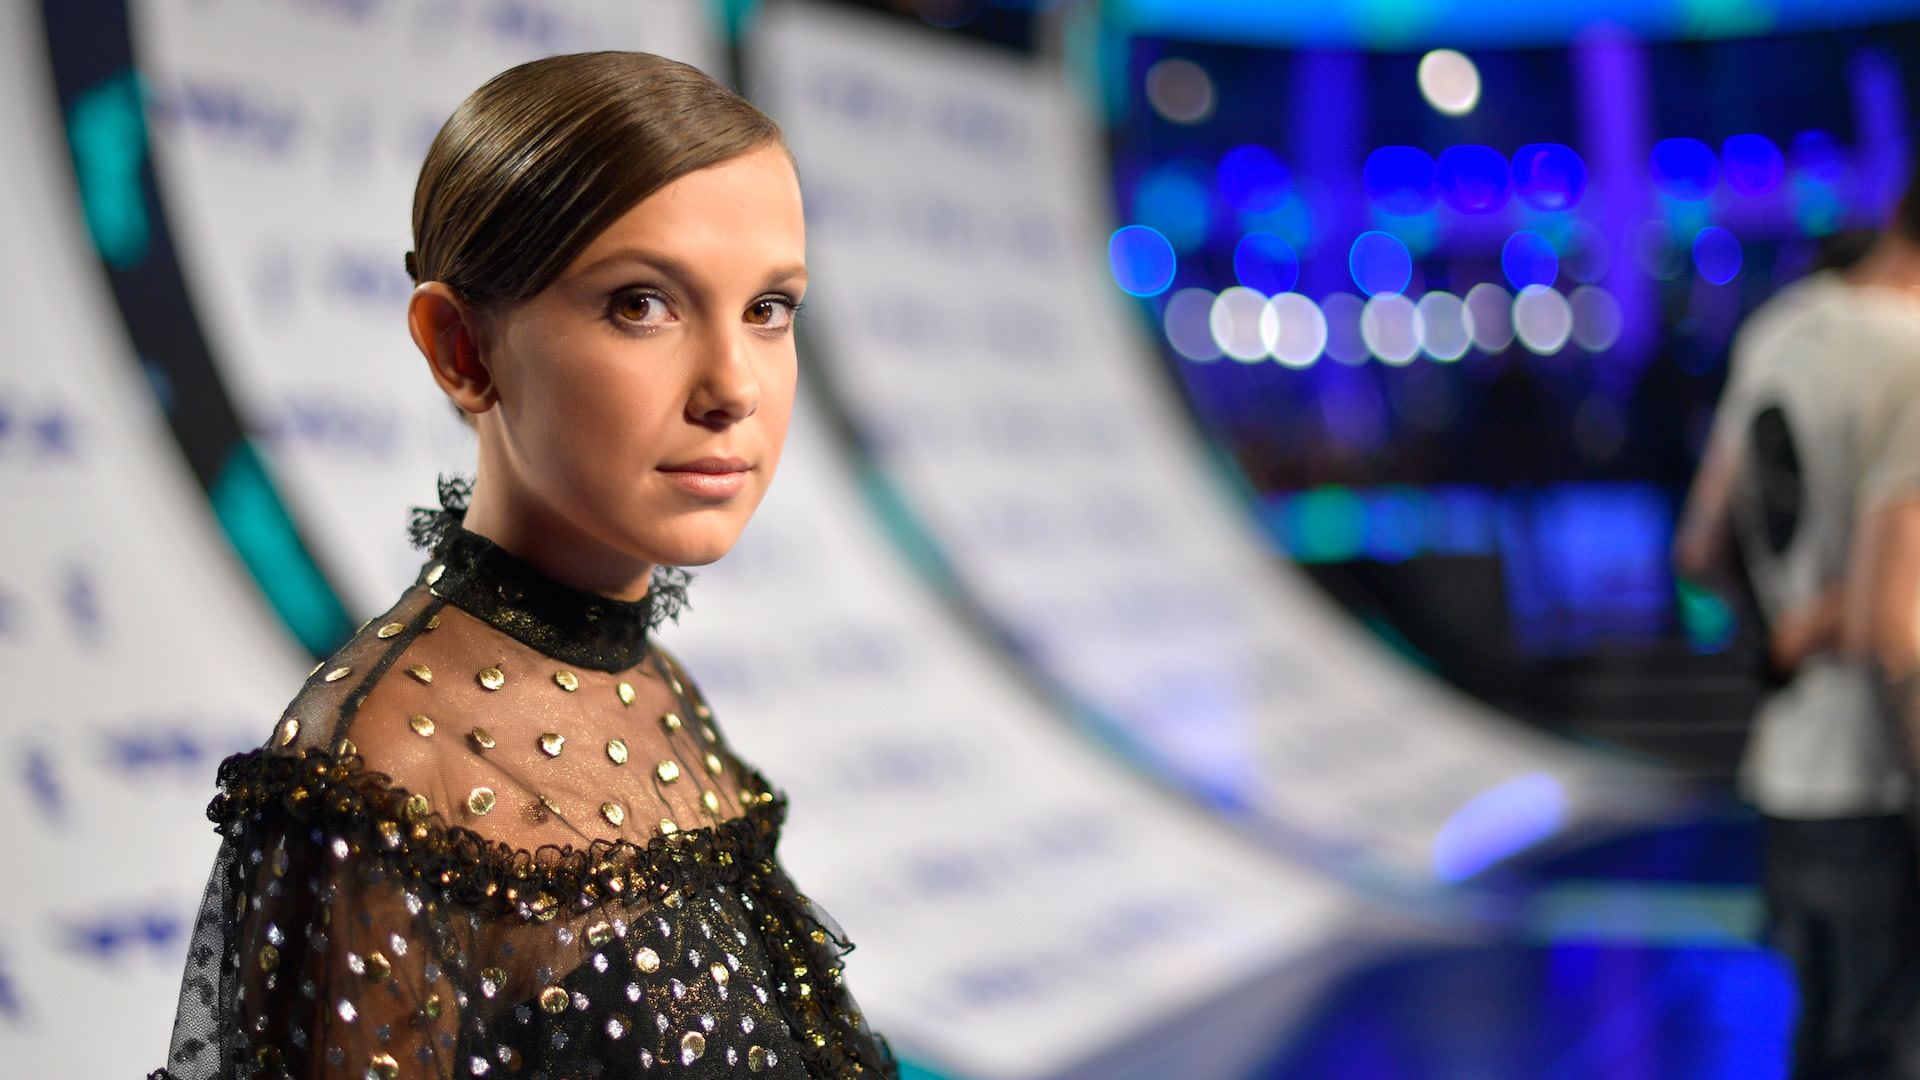 Millie Bobby Brown Says Public Scrutiny Has 'Resulted in Pain' and 'Insecurity' on 16th Birthday